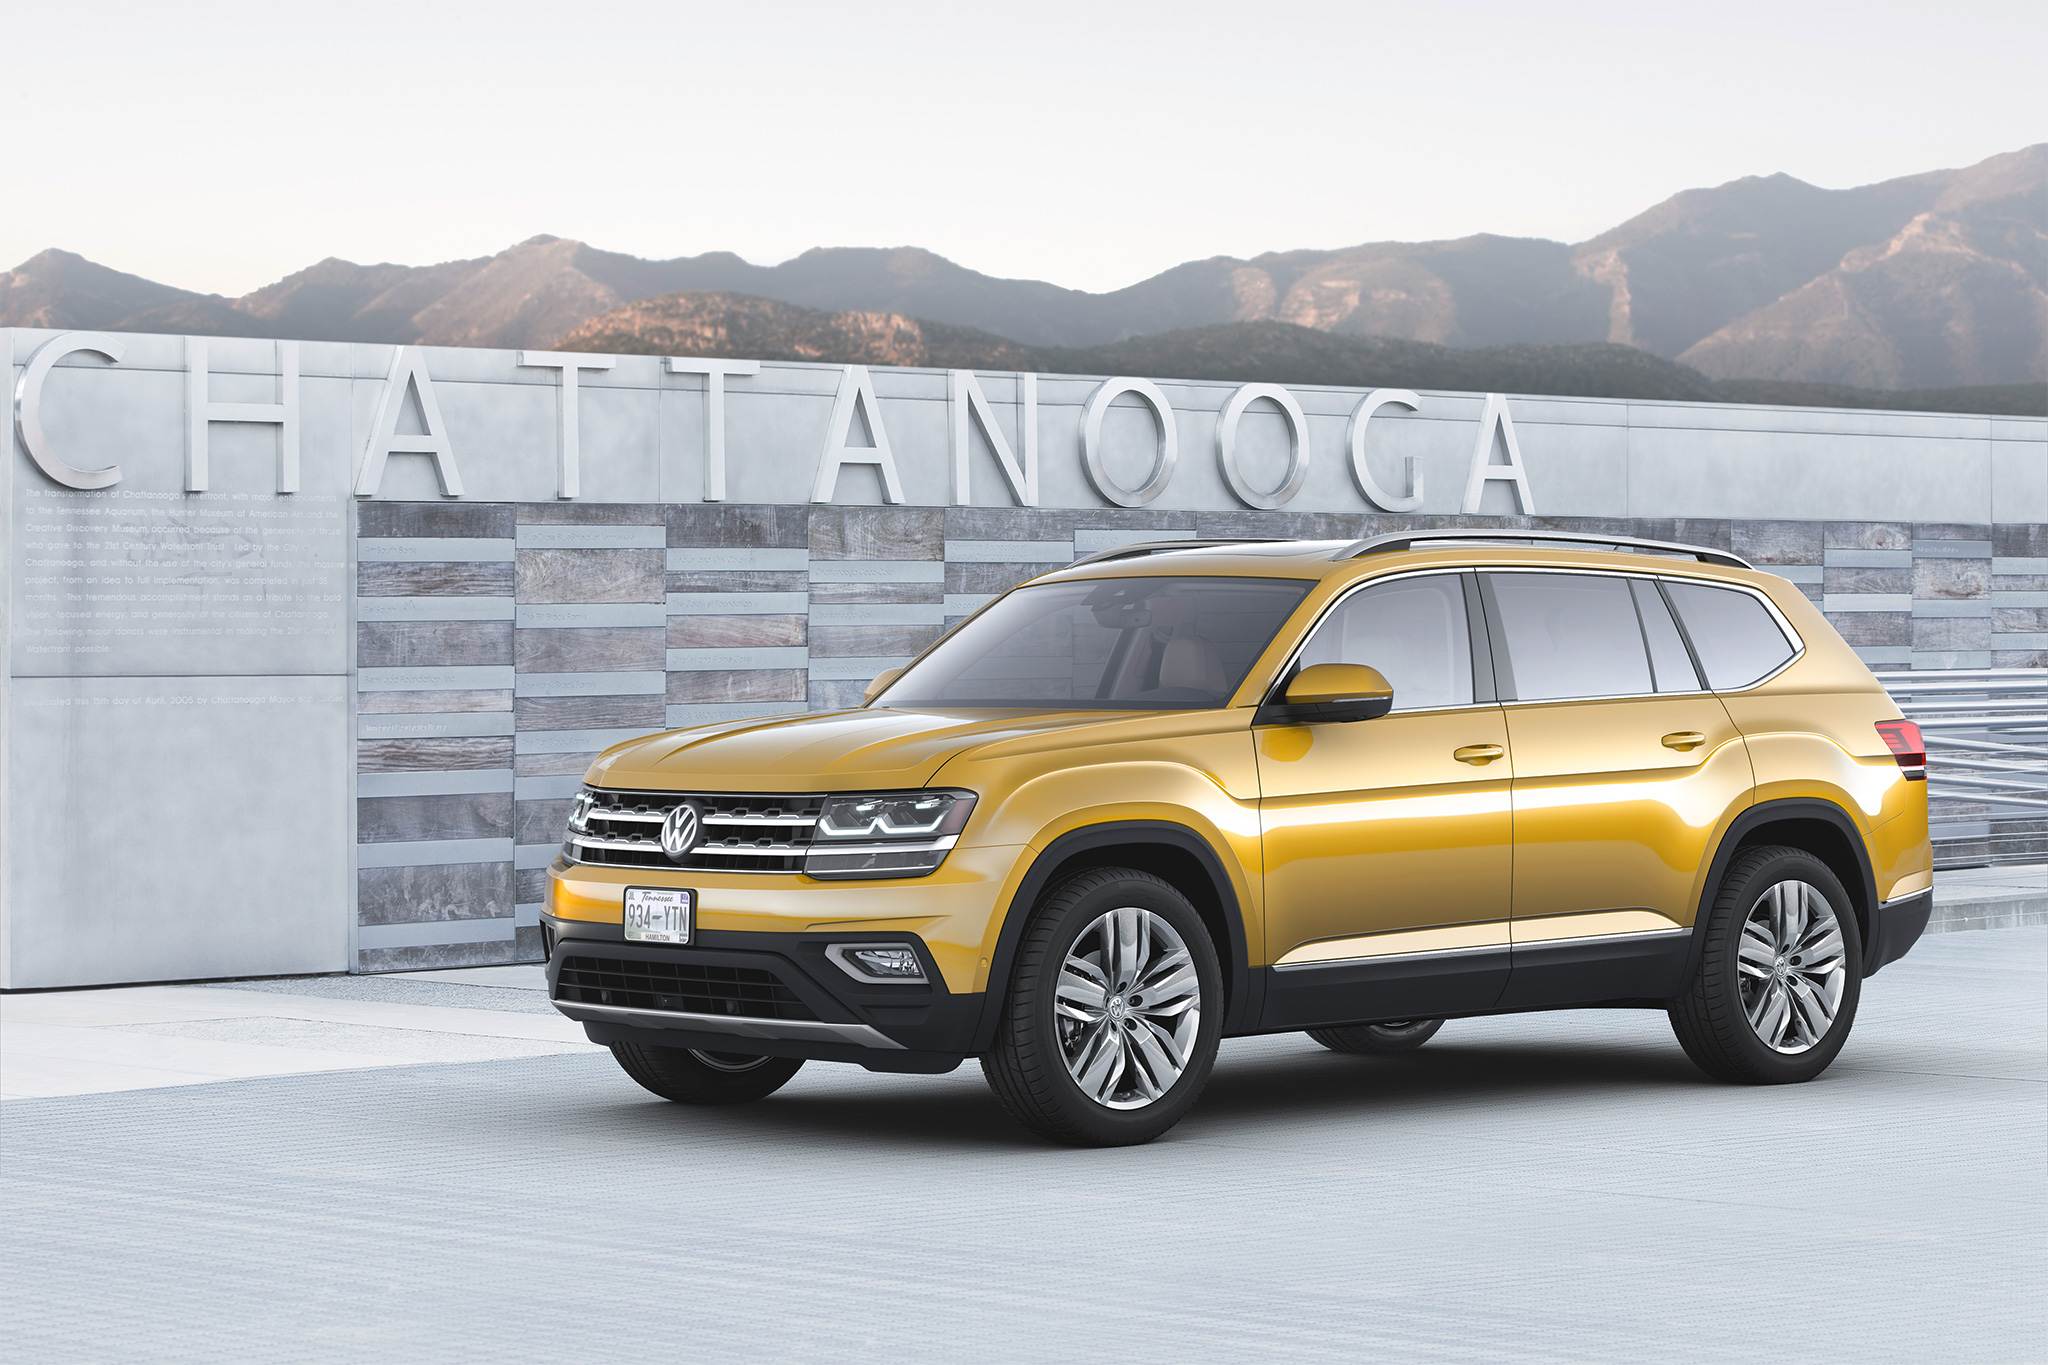 New Volkswagen Atlas Lease Deals & Finance fers Van Nuys CA